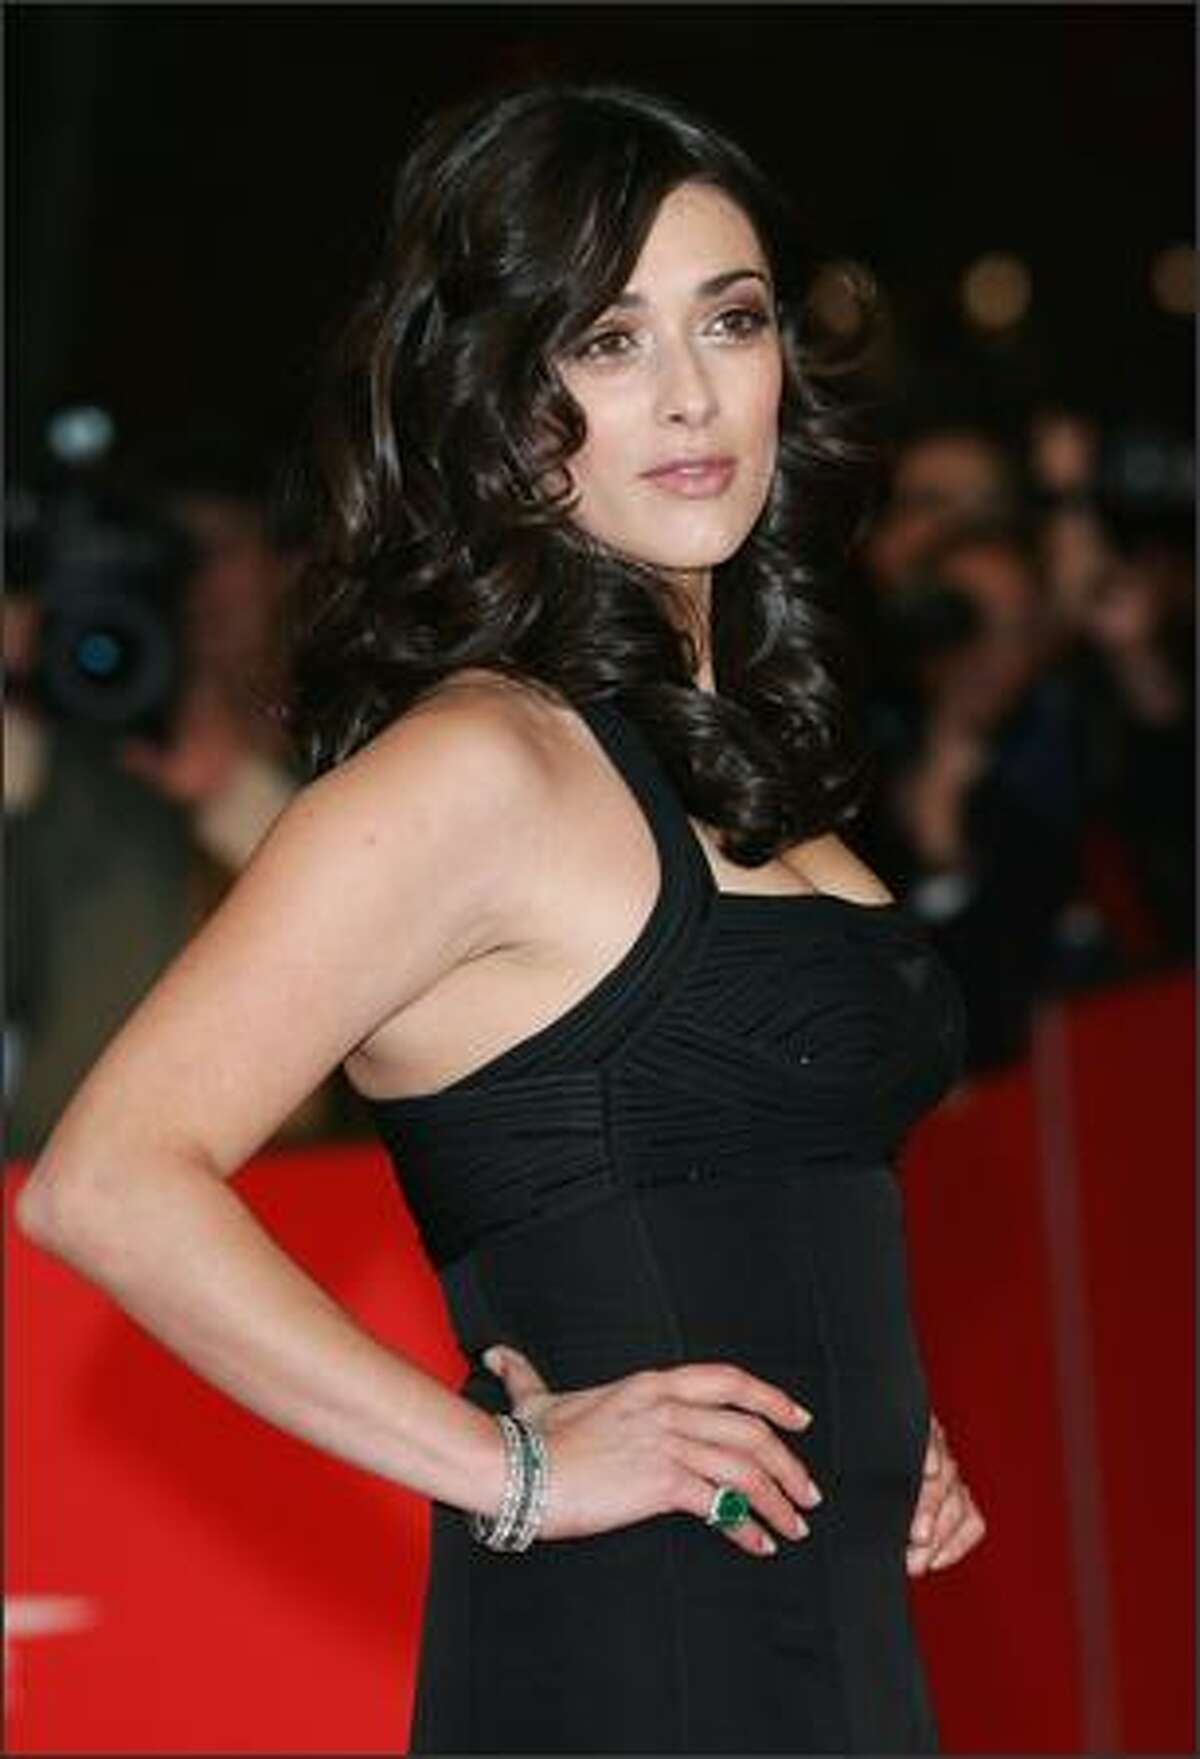 Valentina Lodovini attends the La Giusta Distanza Premiere on day 2 of the 2nd Rome Film Festival on October 19, 2007 in Rome, Italy.